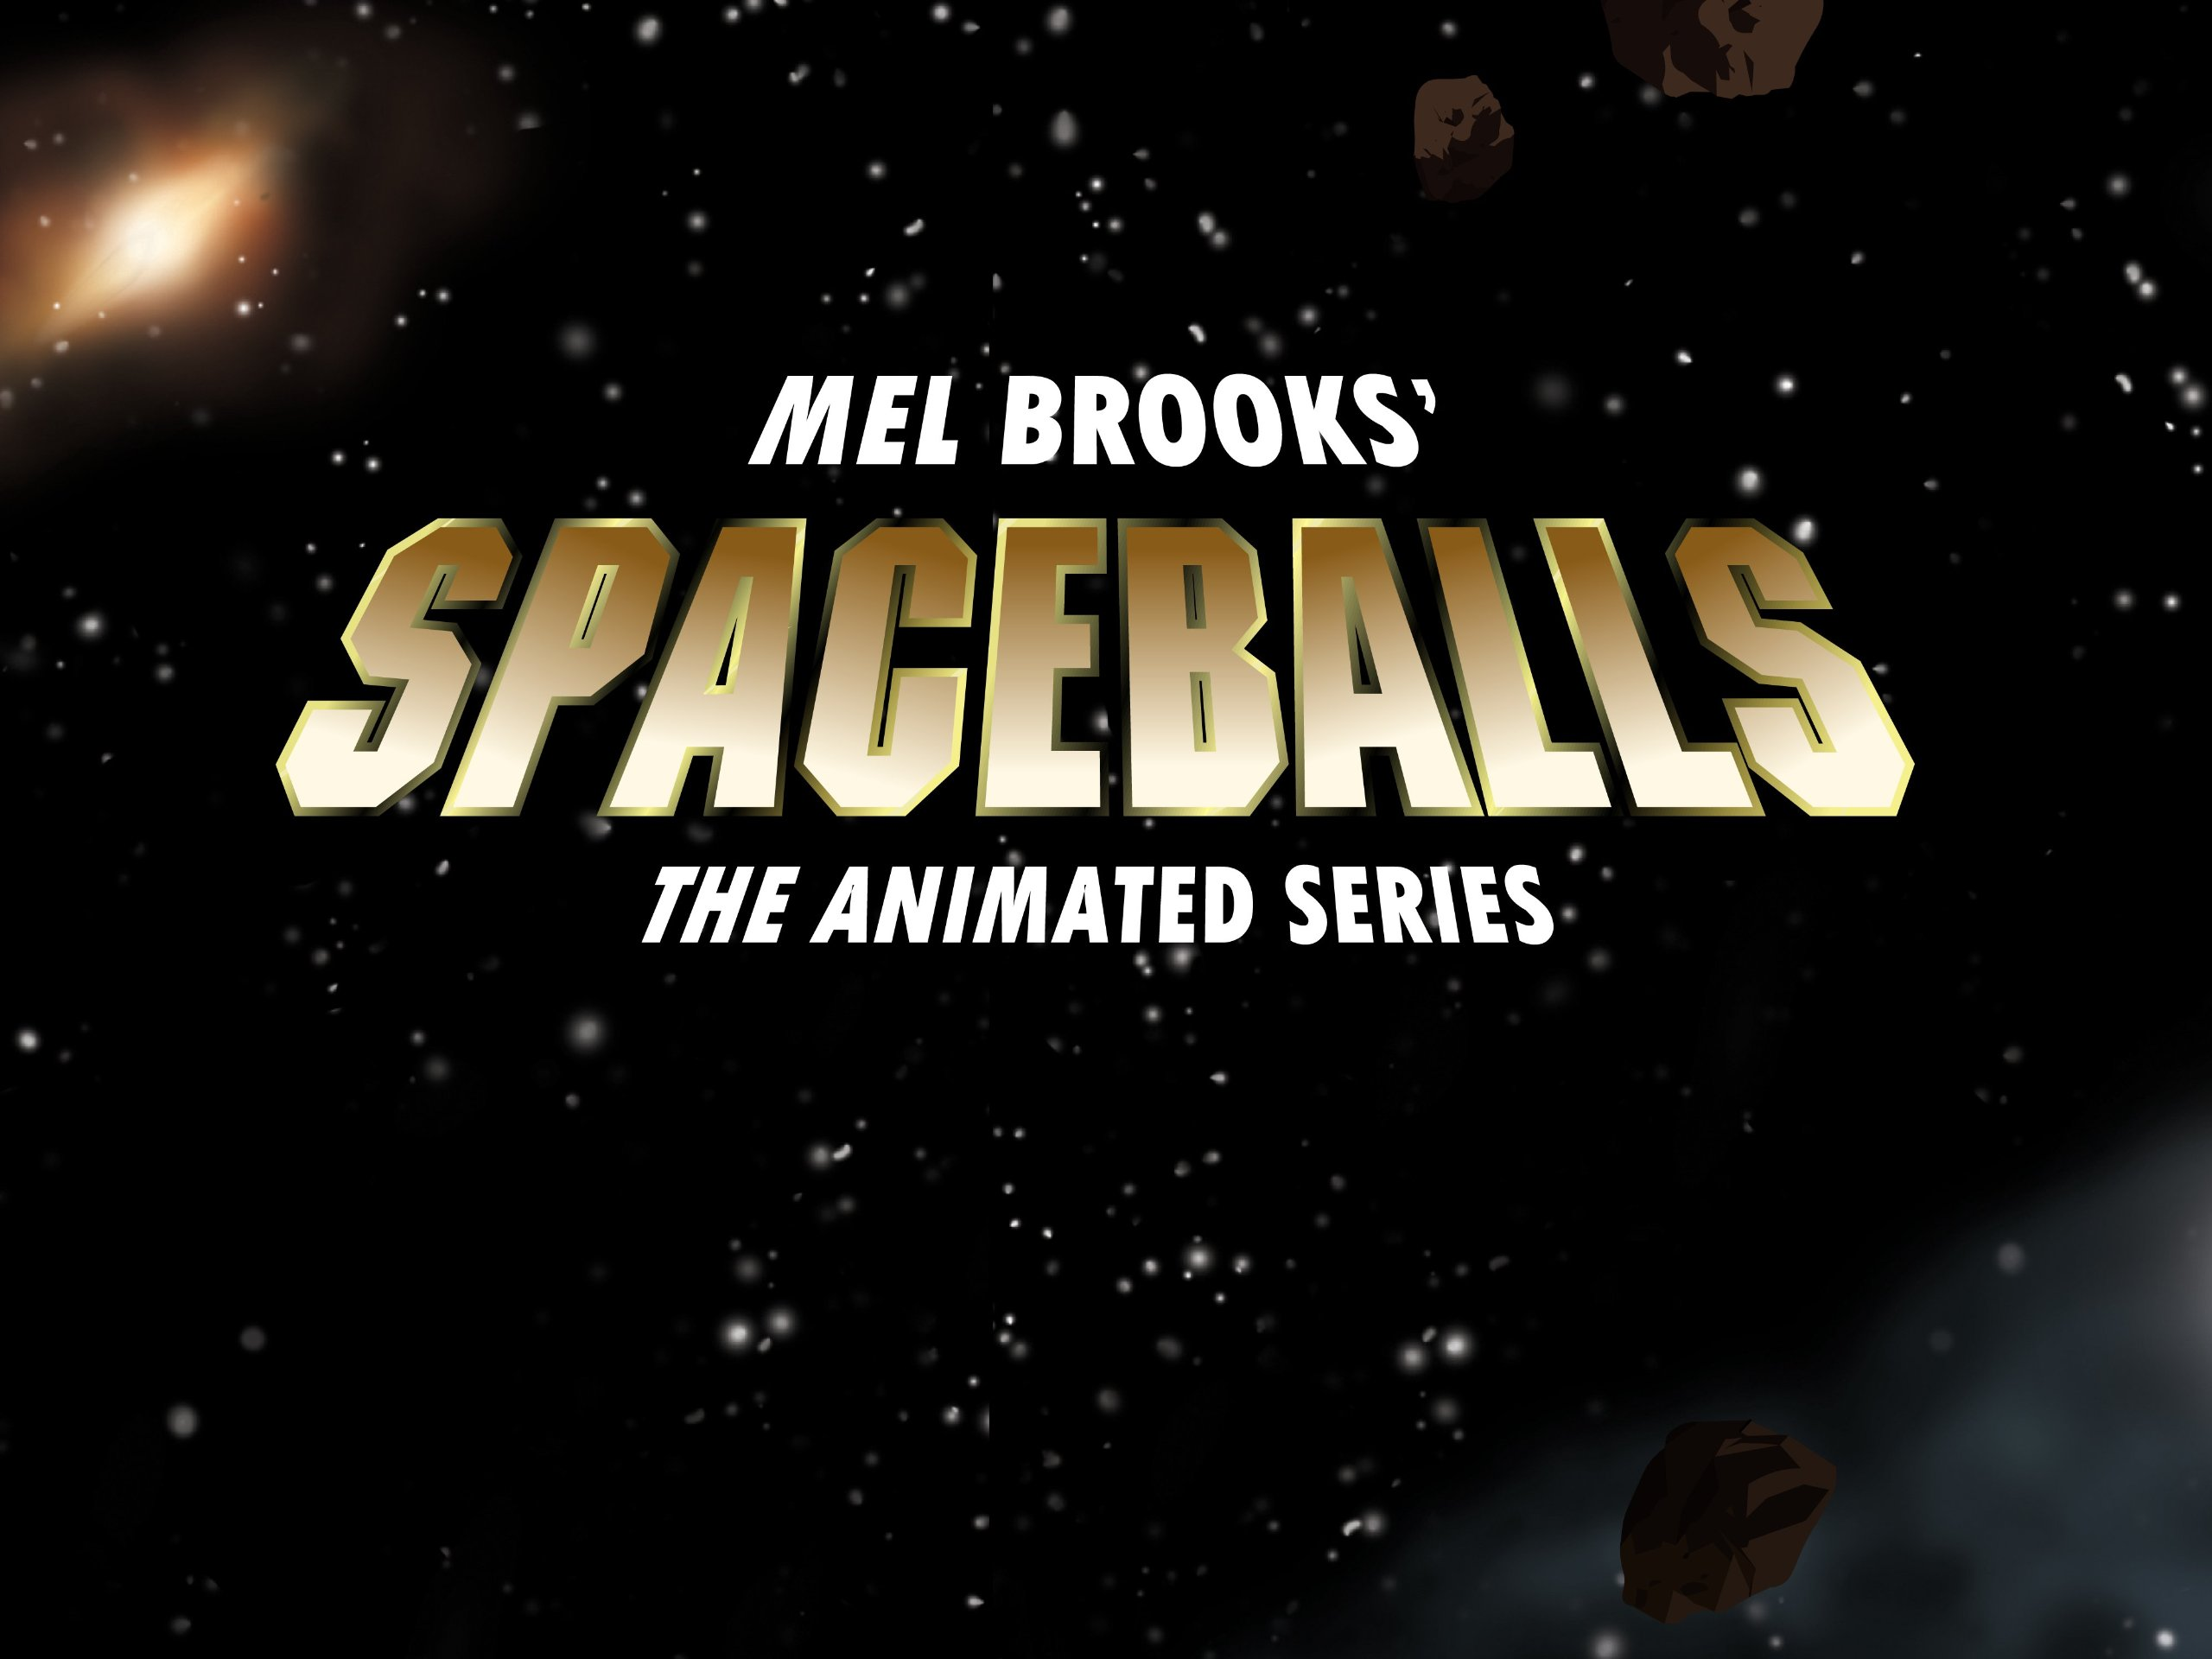 Amazon. Com: spaceballs: mel brooks, john candy, rick moranis, bill.